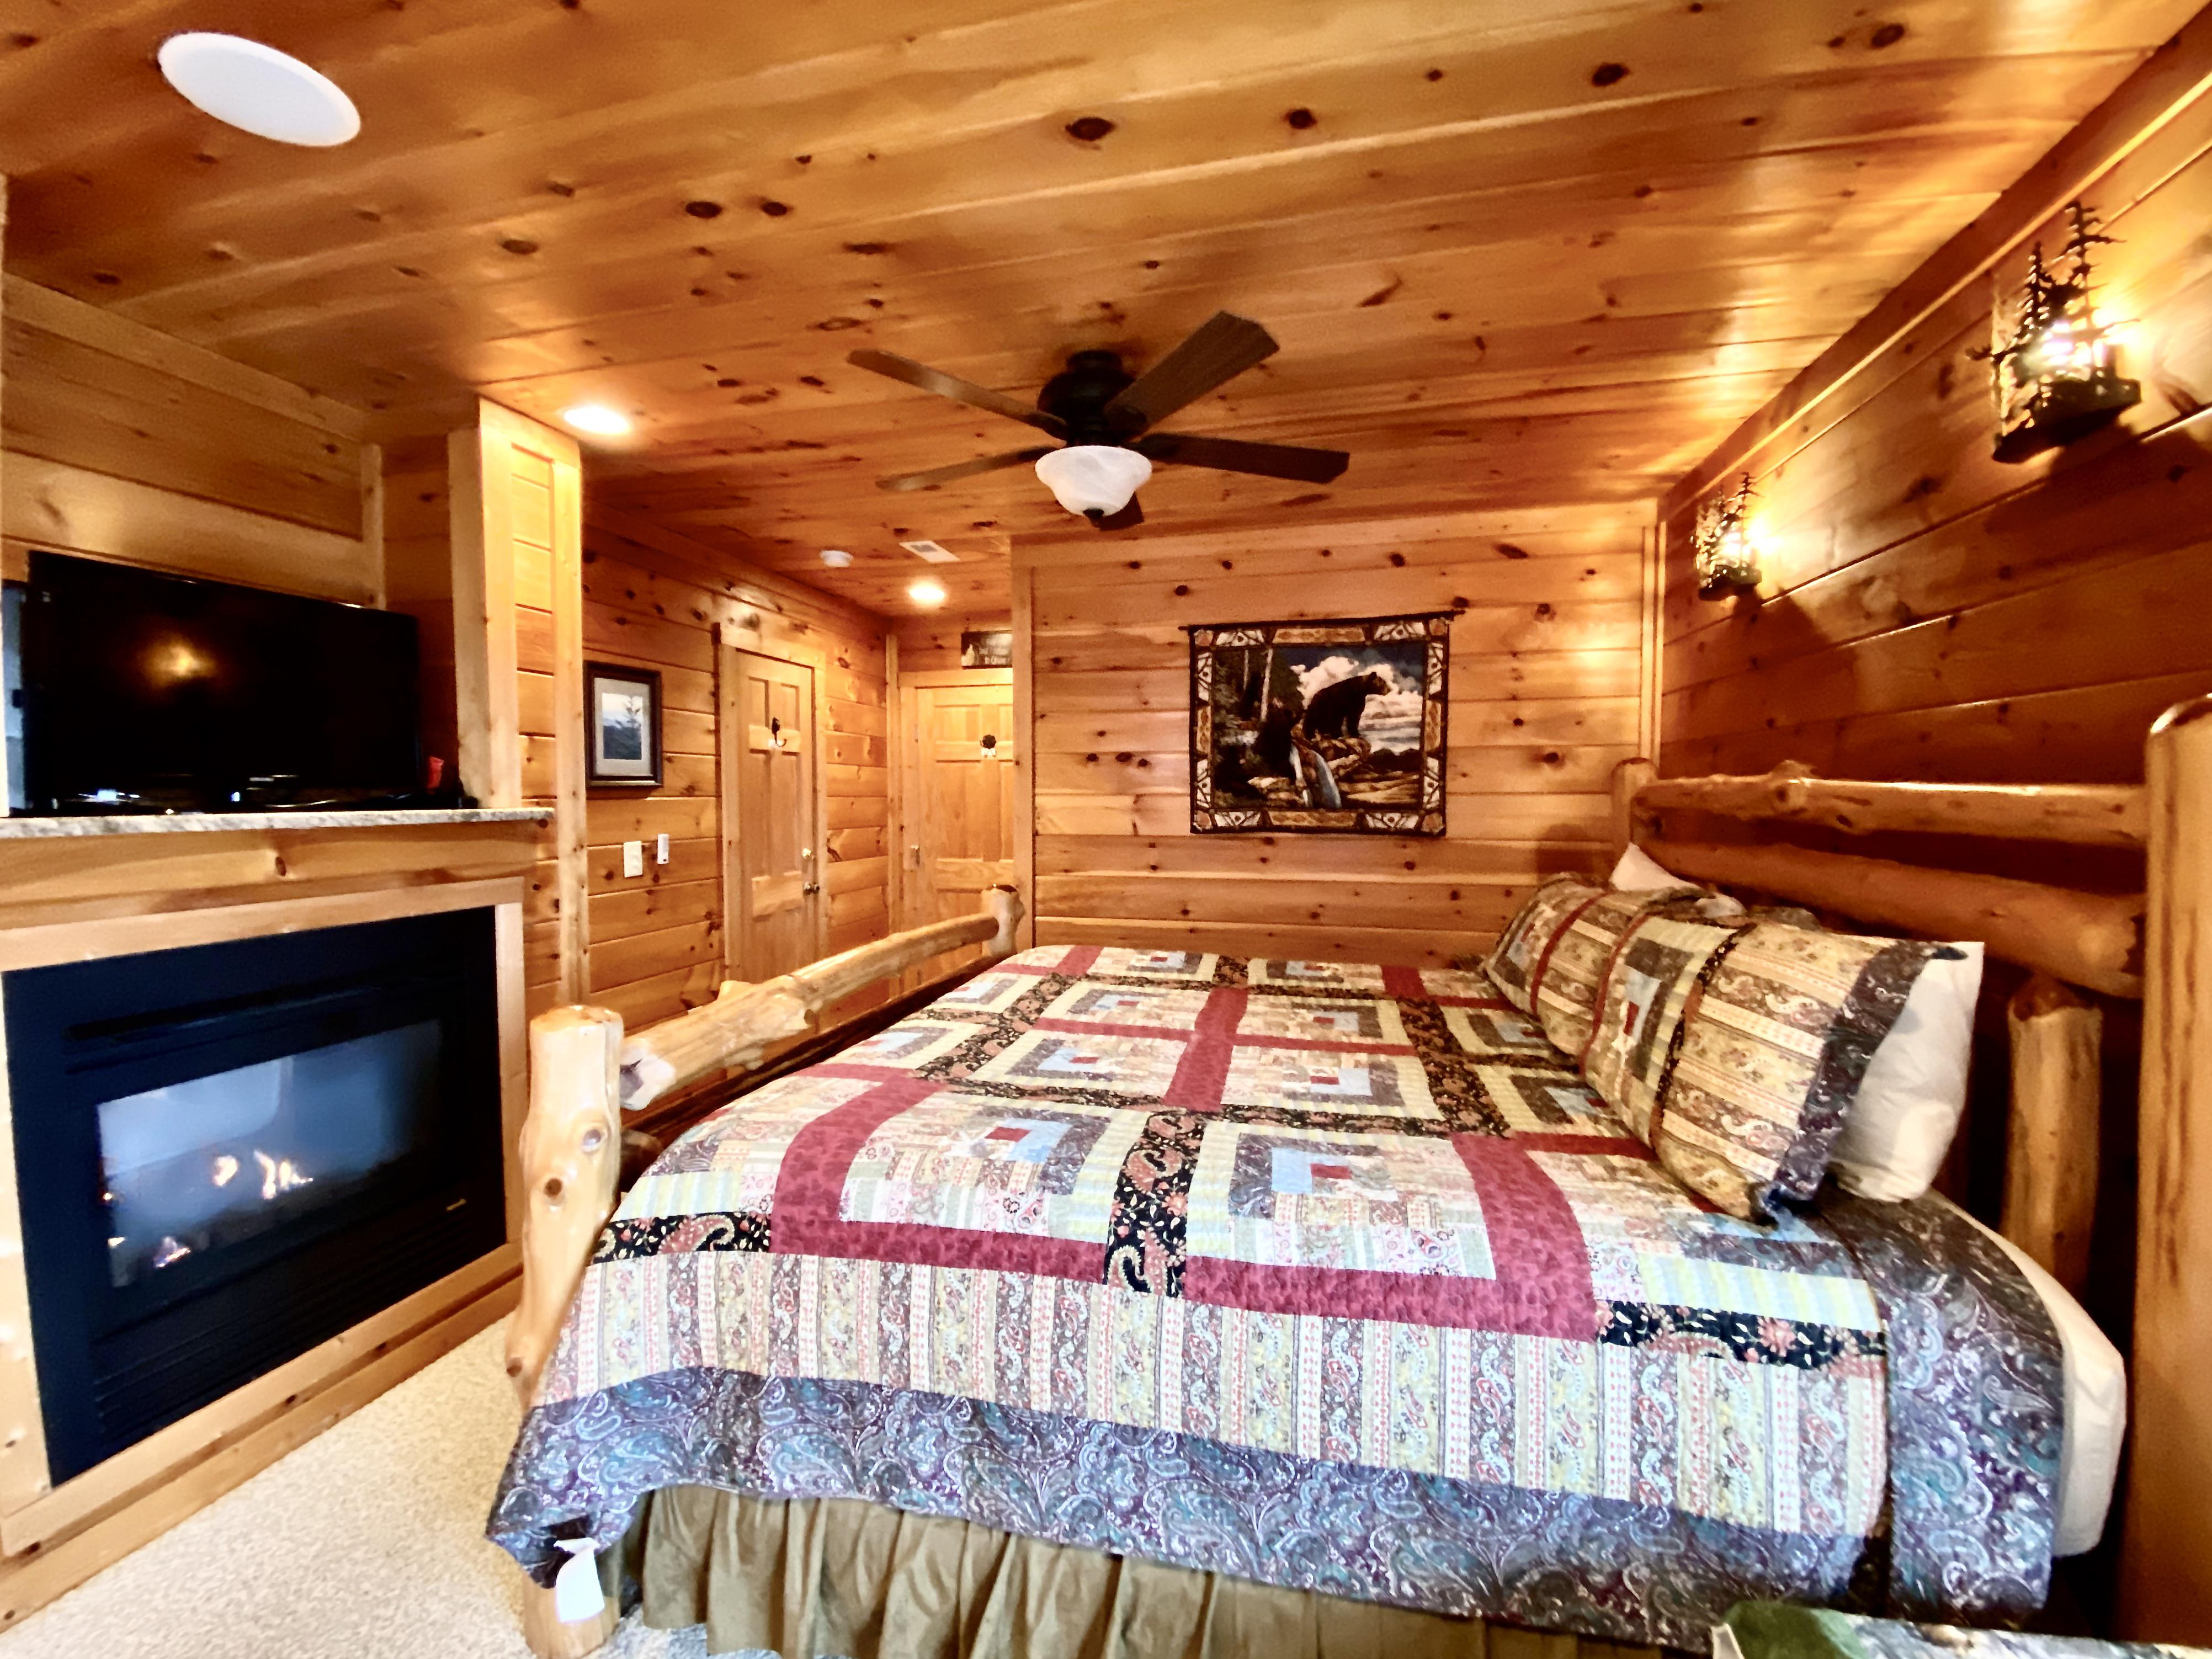 Master Bedroom offers a Romantic Ambiance